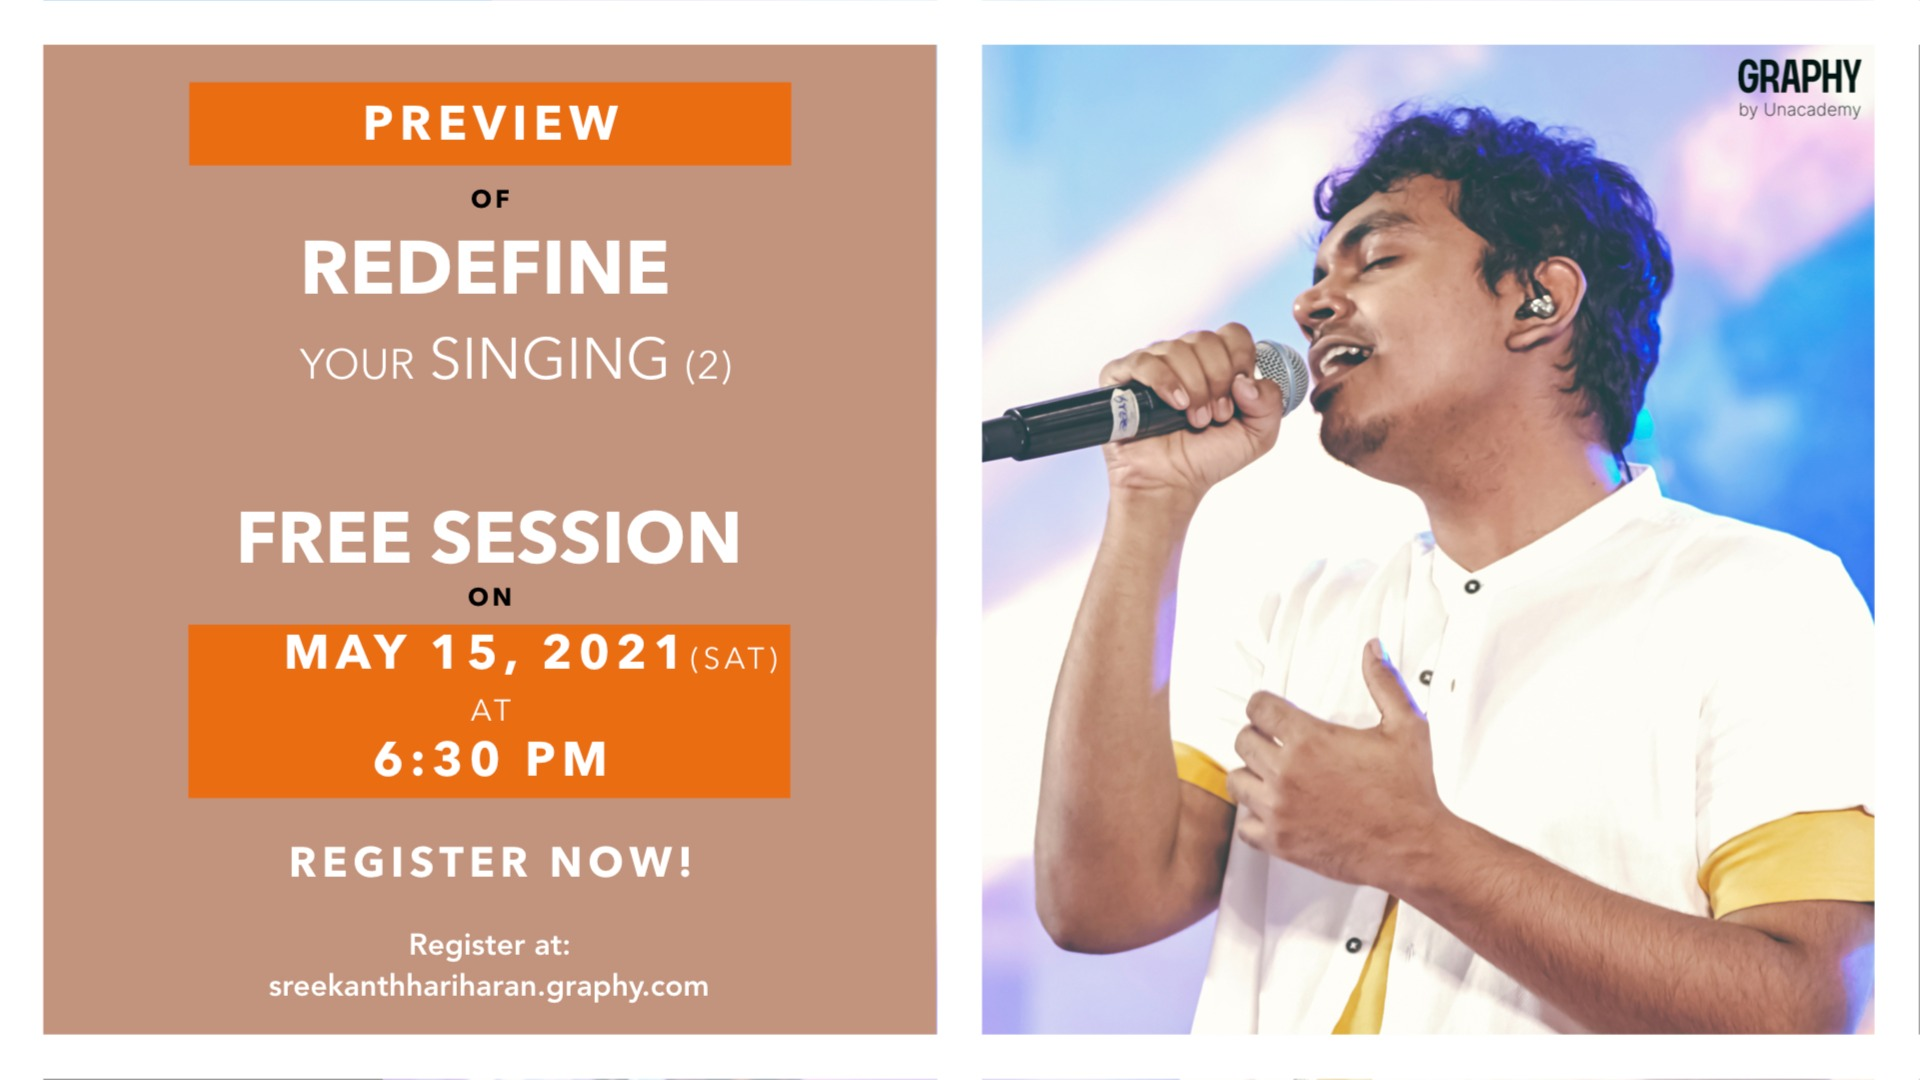 Redefine your Singing - Preview